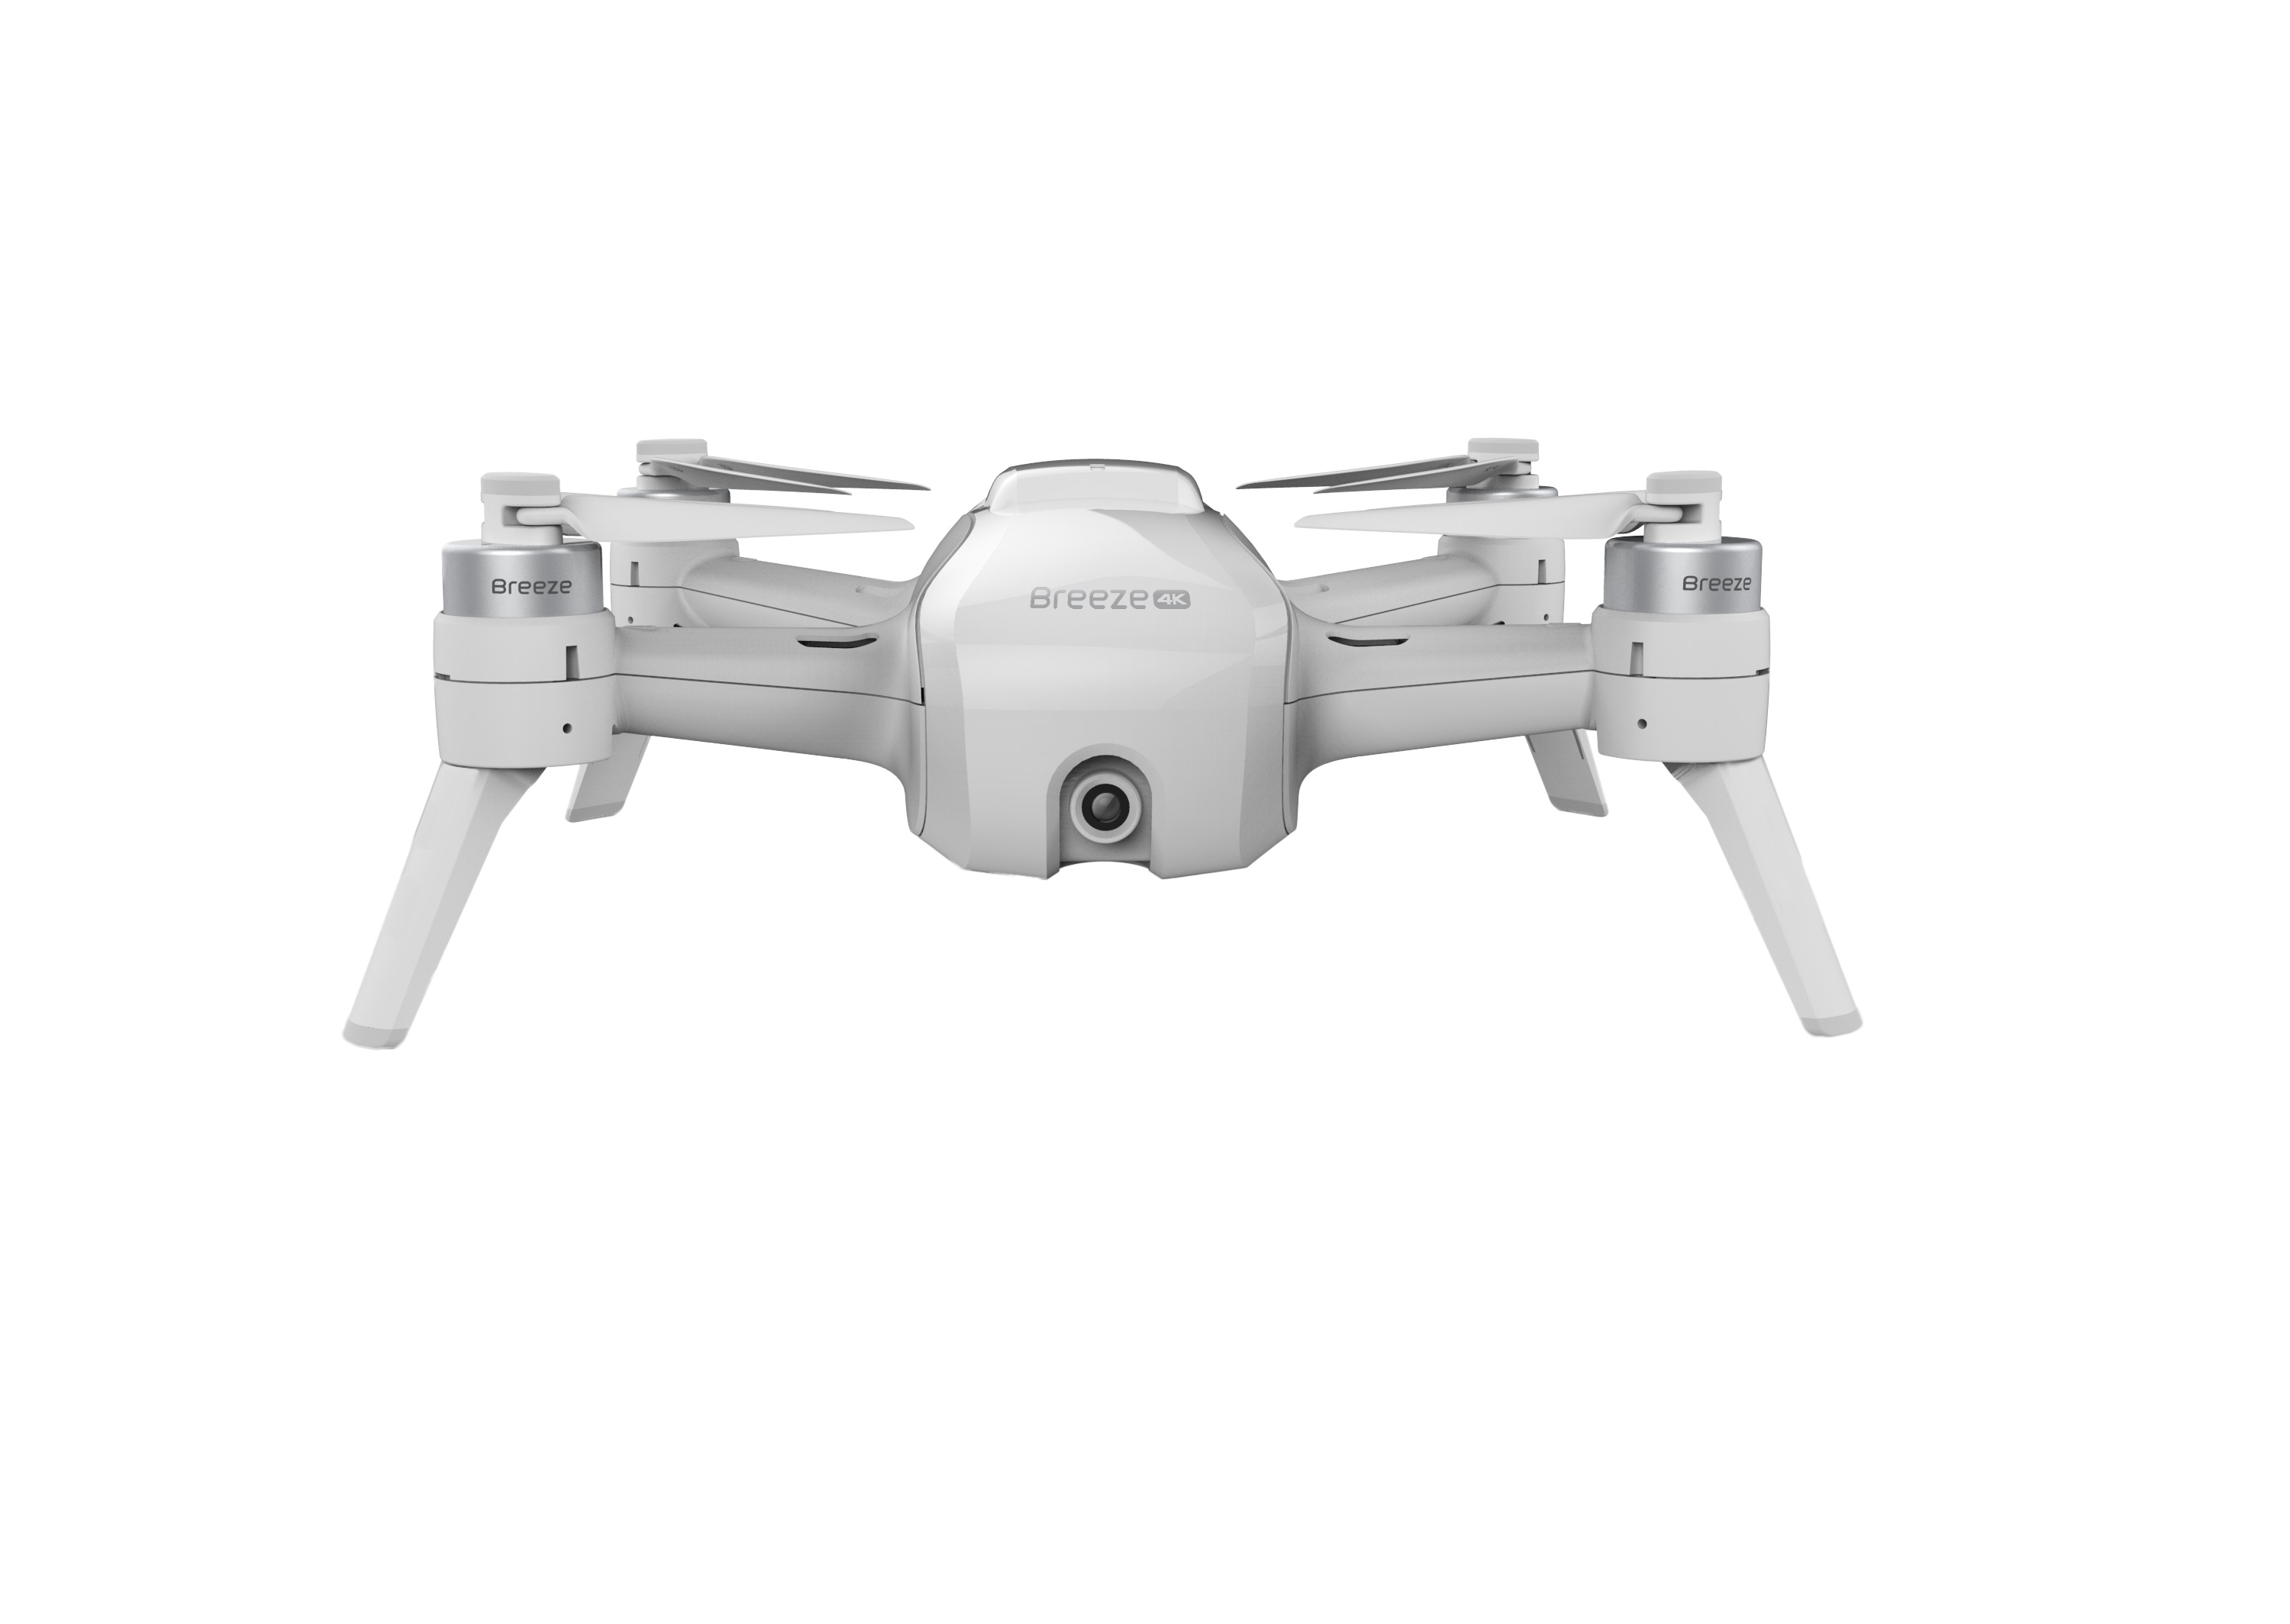 Click here to buy Yuneec Breeze Drone With 4K Camera (Bluetooth Controller Included) by Yuneec.